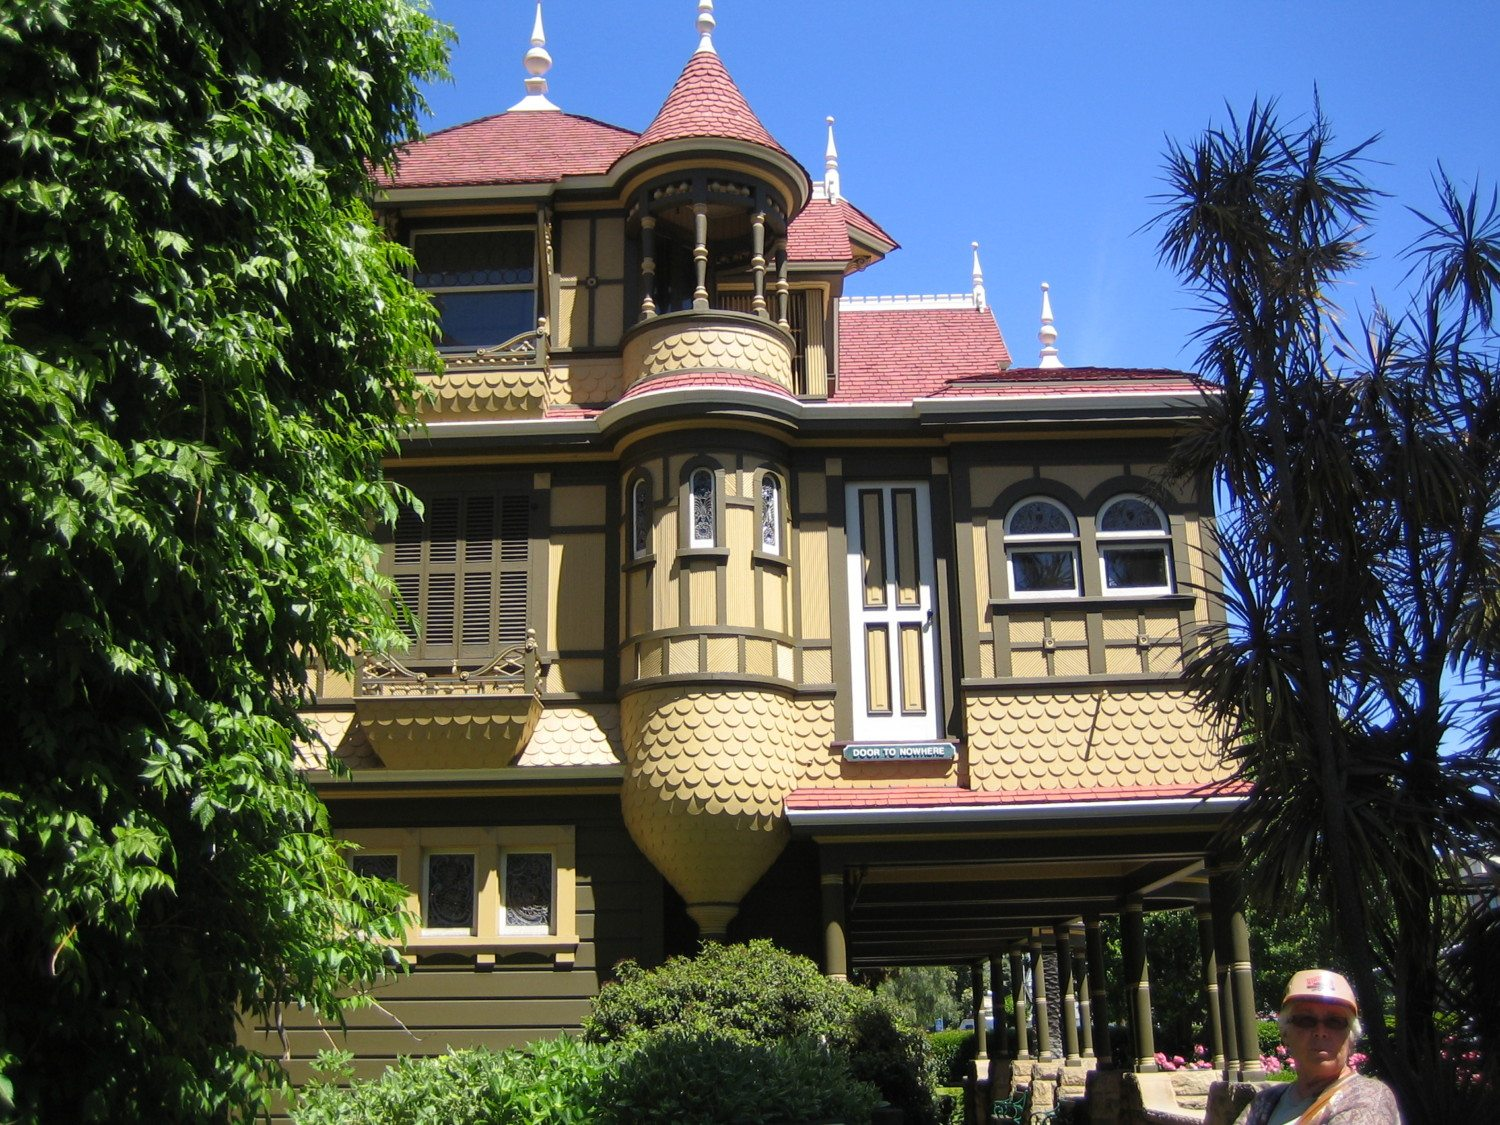 winchester mystery house: 7 spooky facts - simplemost